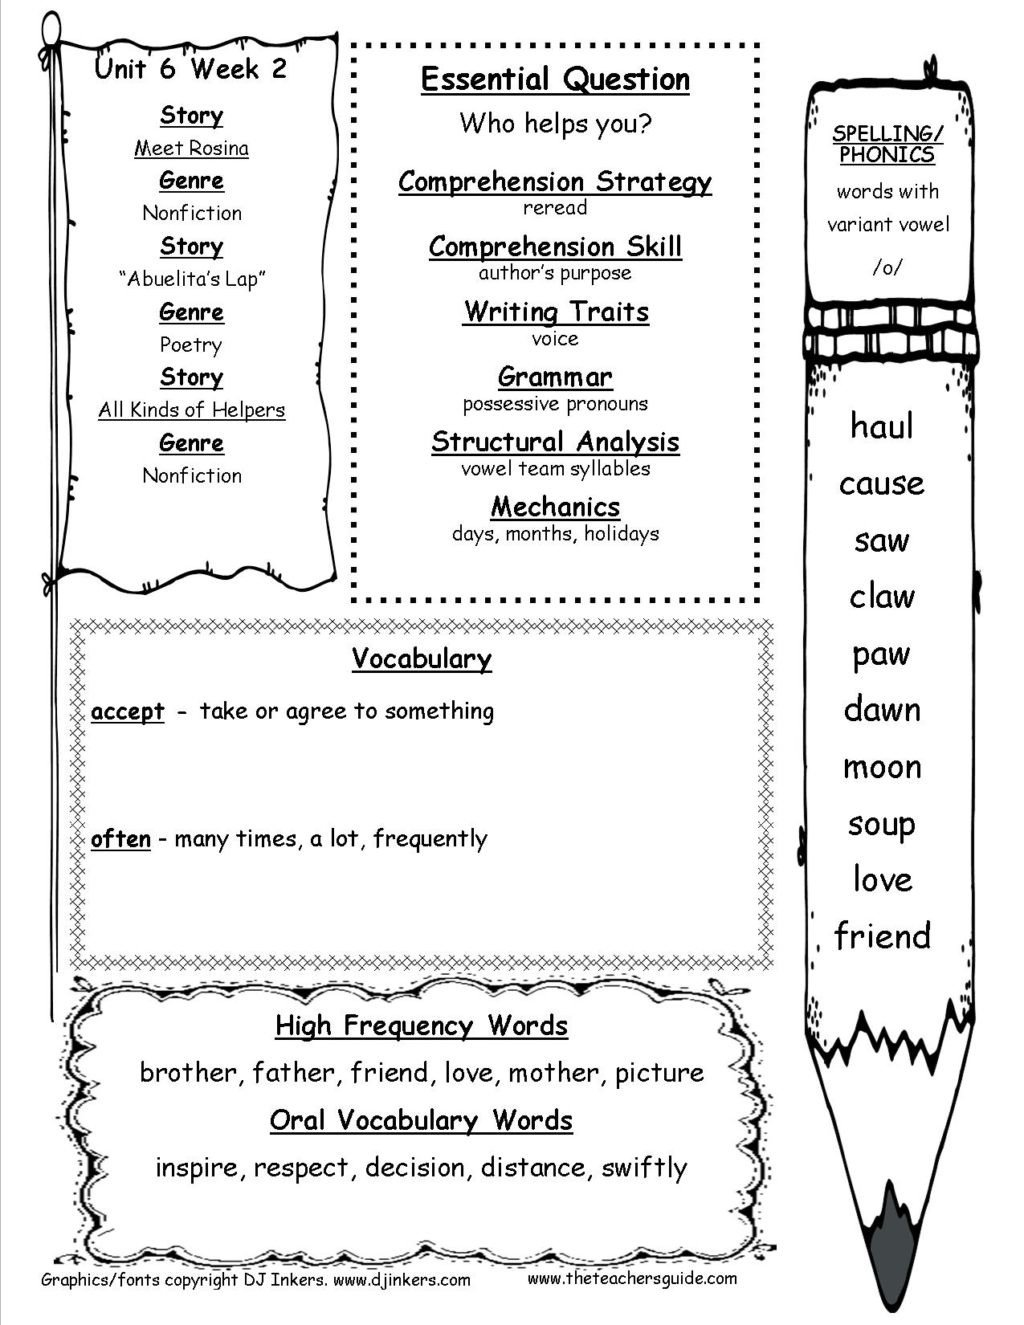 Tally Marks Worksheets for Kindergarten Worksheet Unitsixweektwottg Tally Mark Worksheet Firstrade